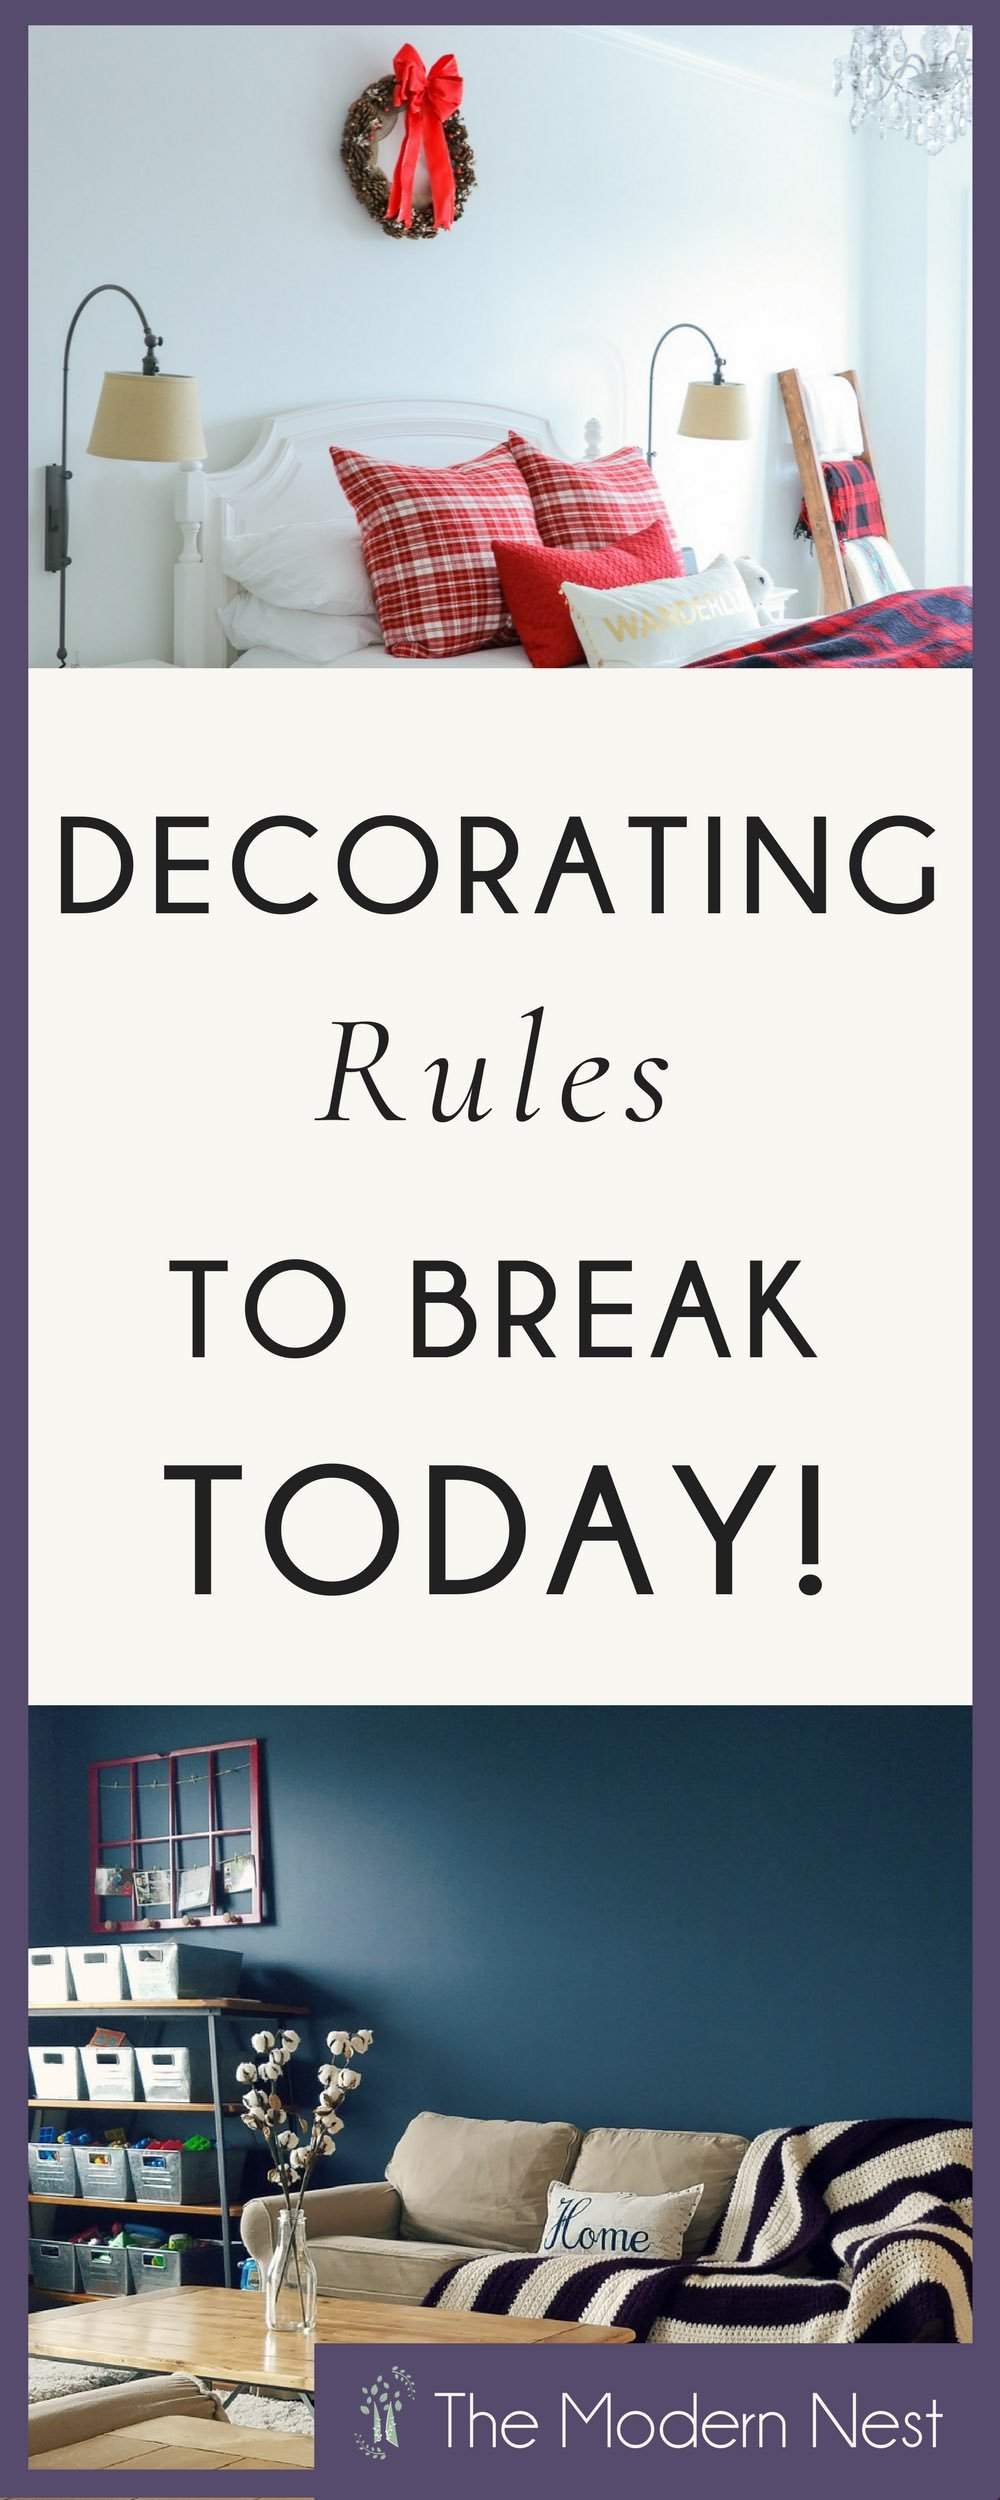 Decorating Rules Are There To Guide Our Home Decor Decisions. But Certain  Rules Are Designed